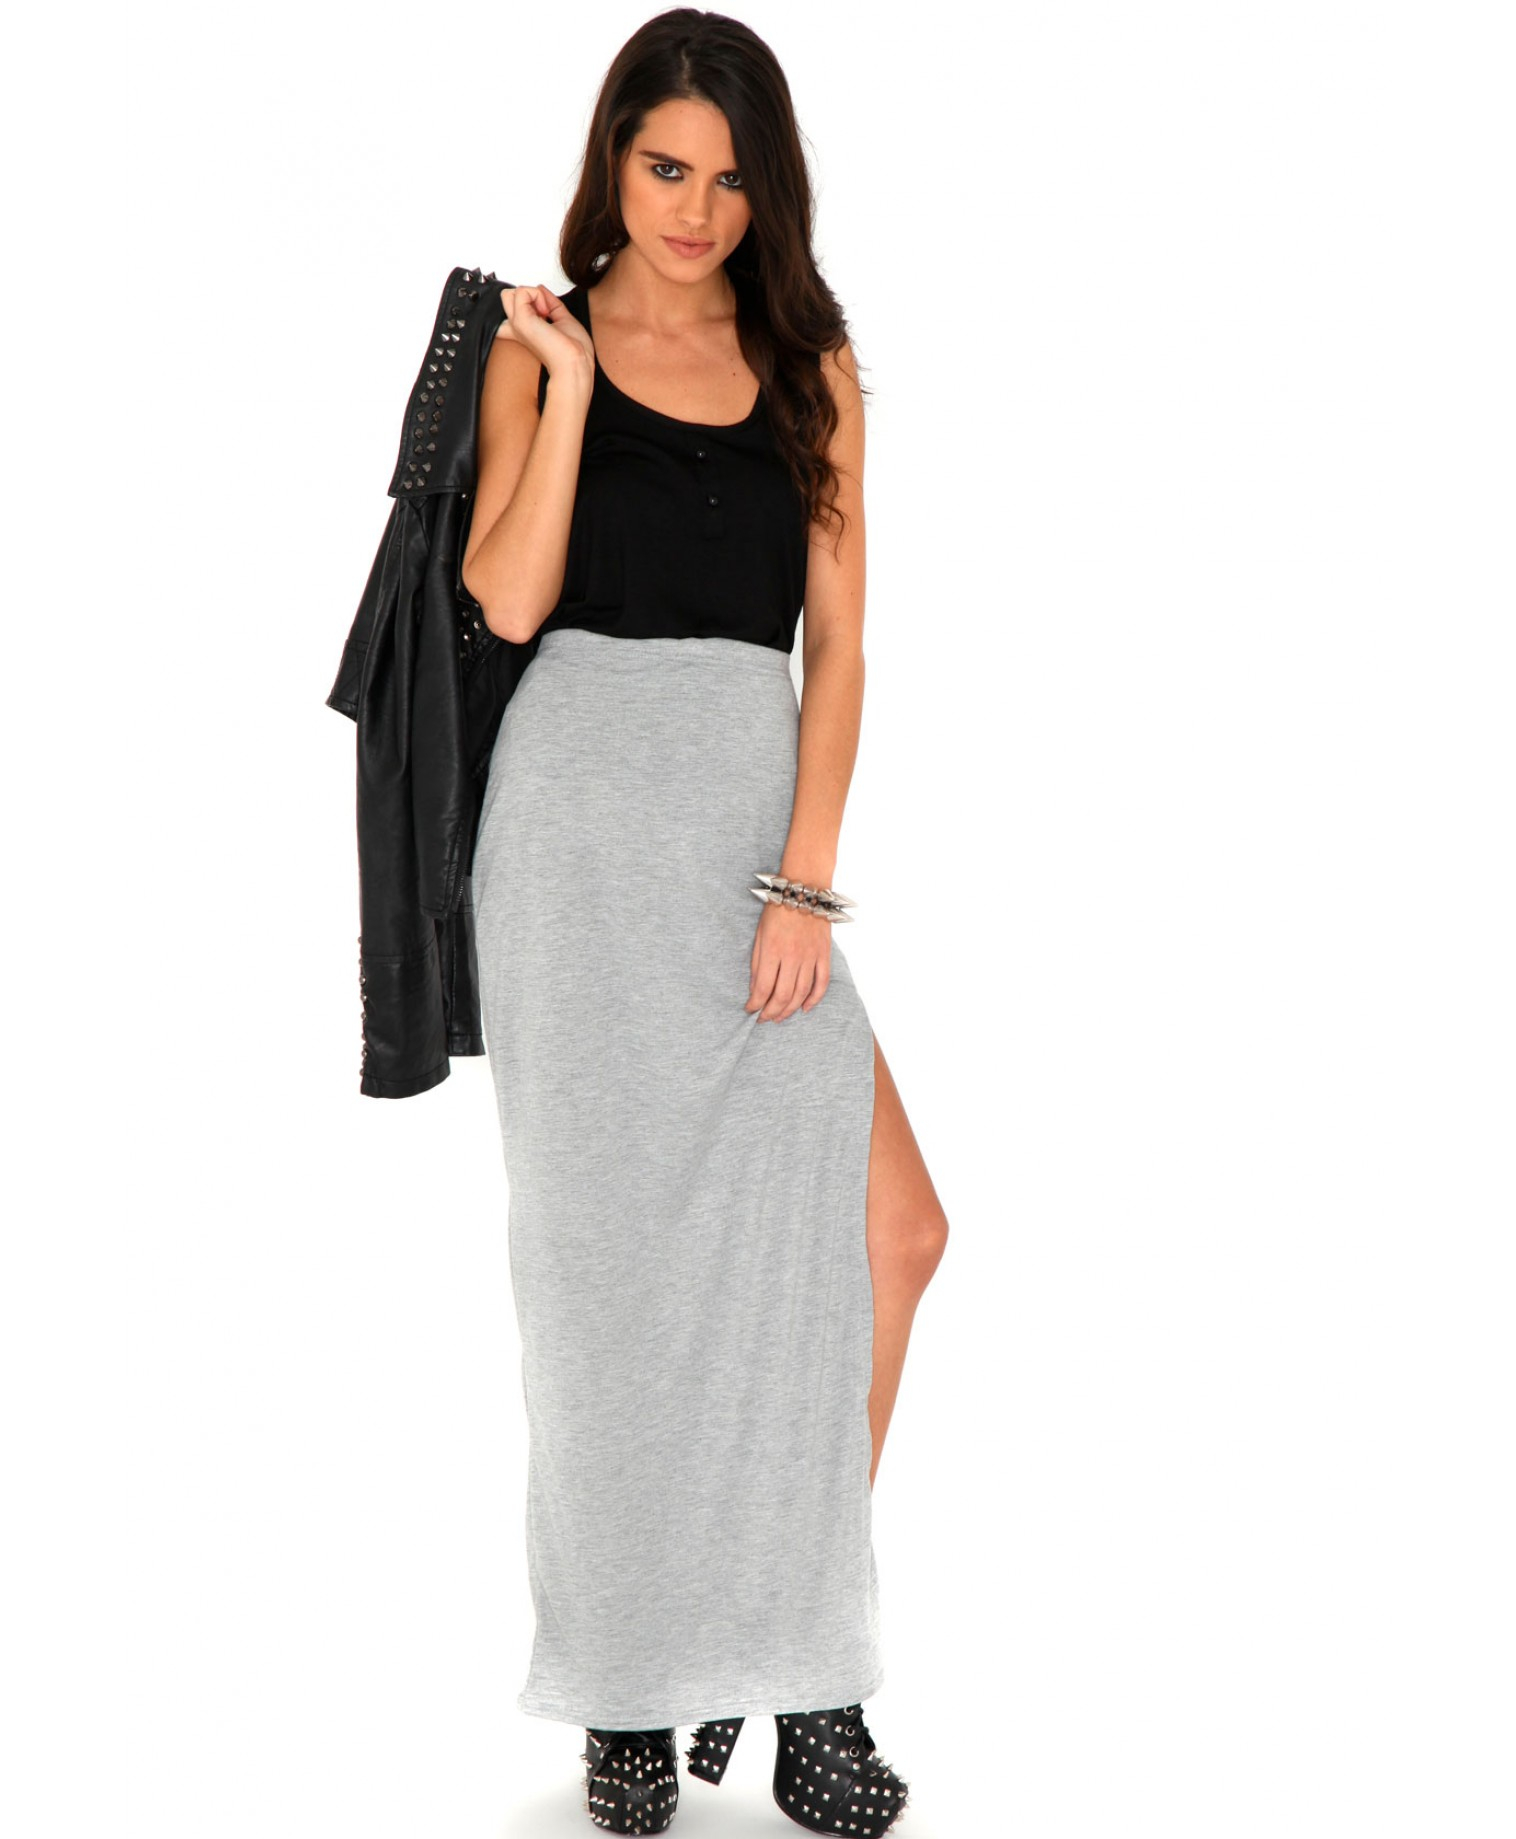 Missguided Jenna Value Split Maxi Skirt In Light Grey in Gray | Lyst